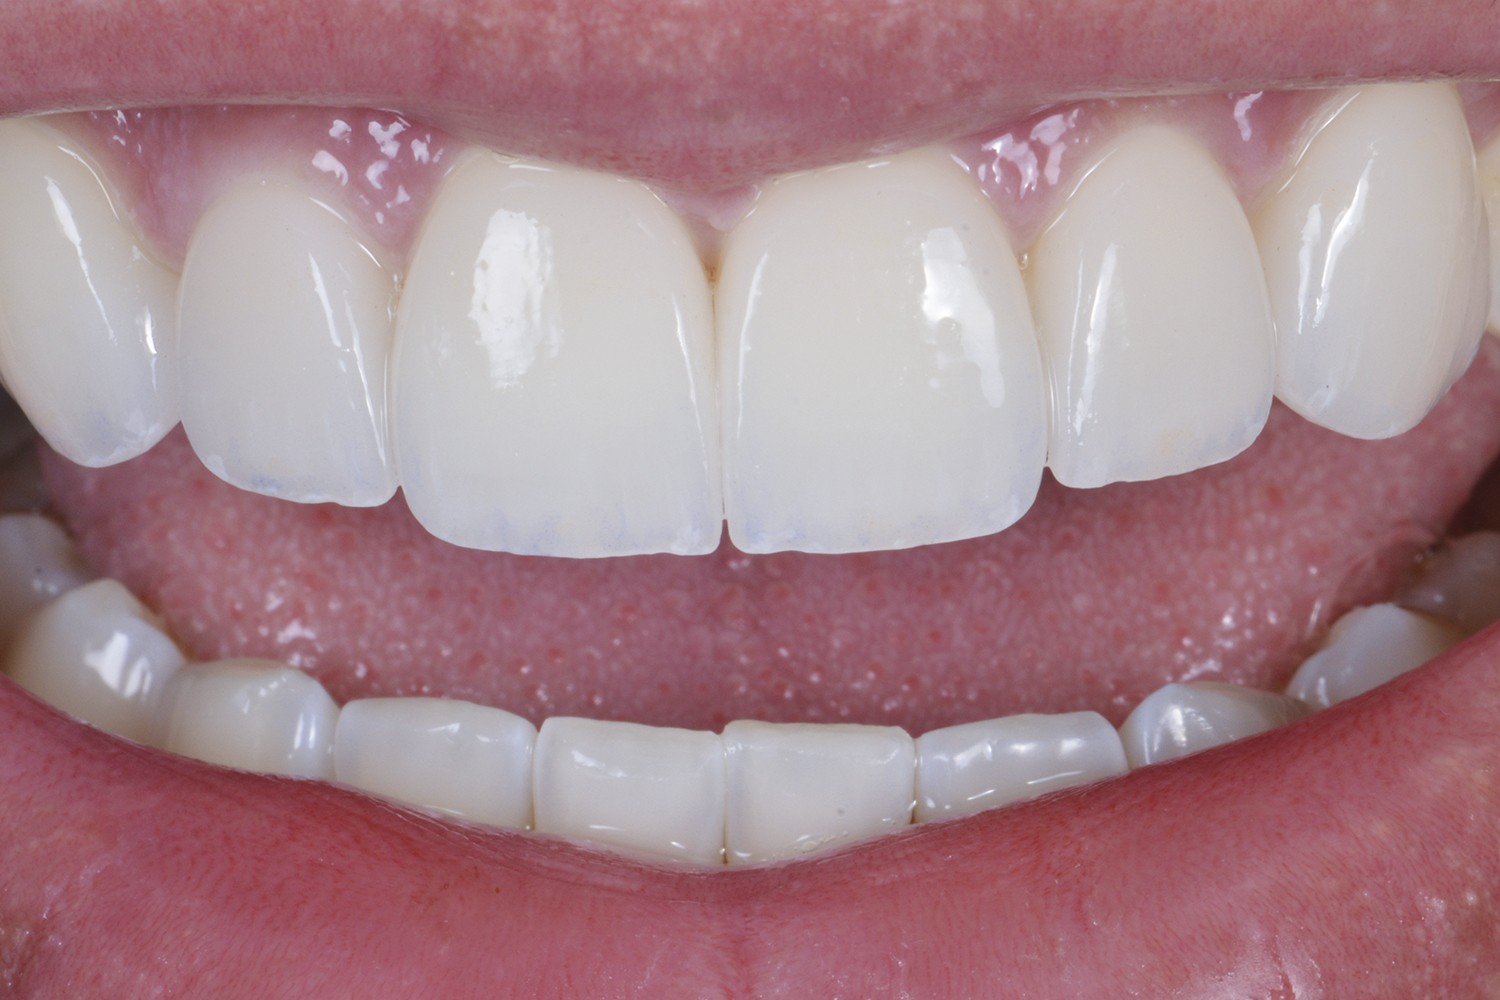 Dental bleaching associated with minimally invasive ceramic veneers: clinical case report